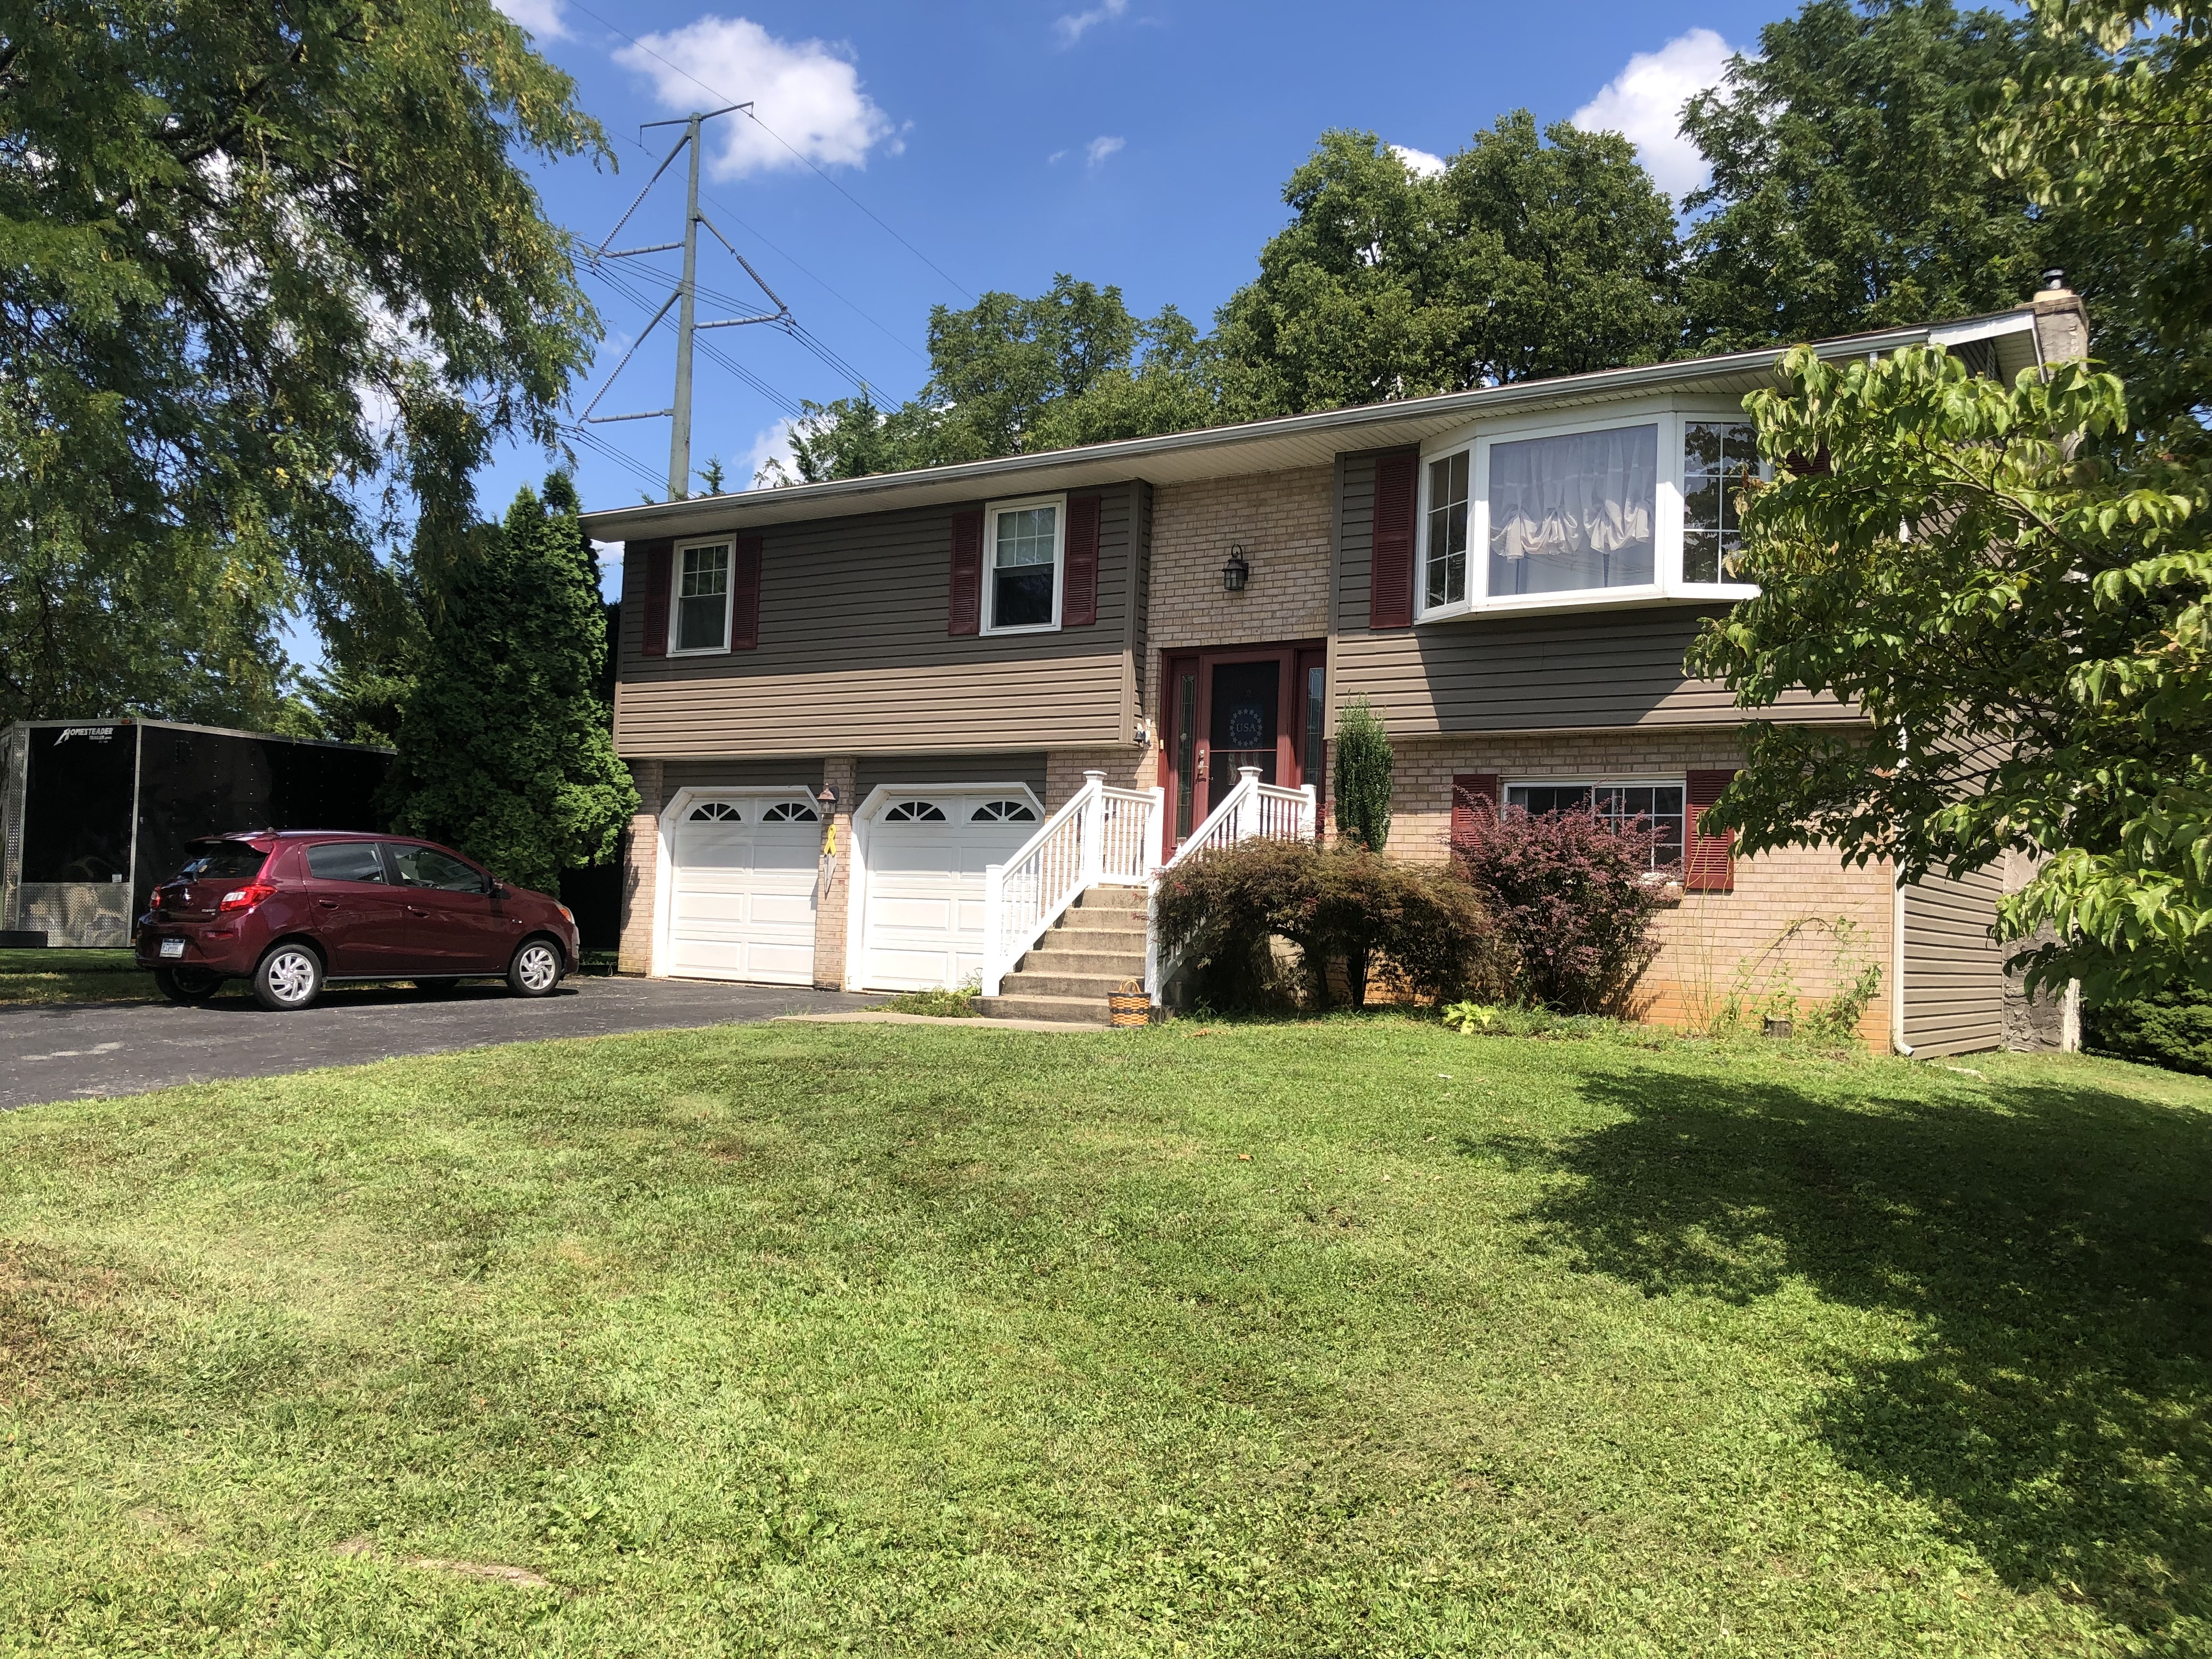 Allentown – 4 Bedroom 2 Bath $270,000